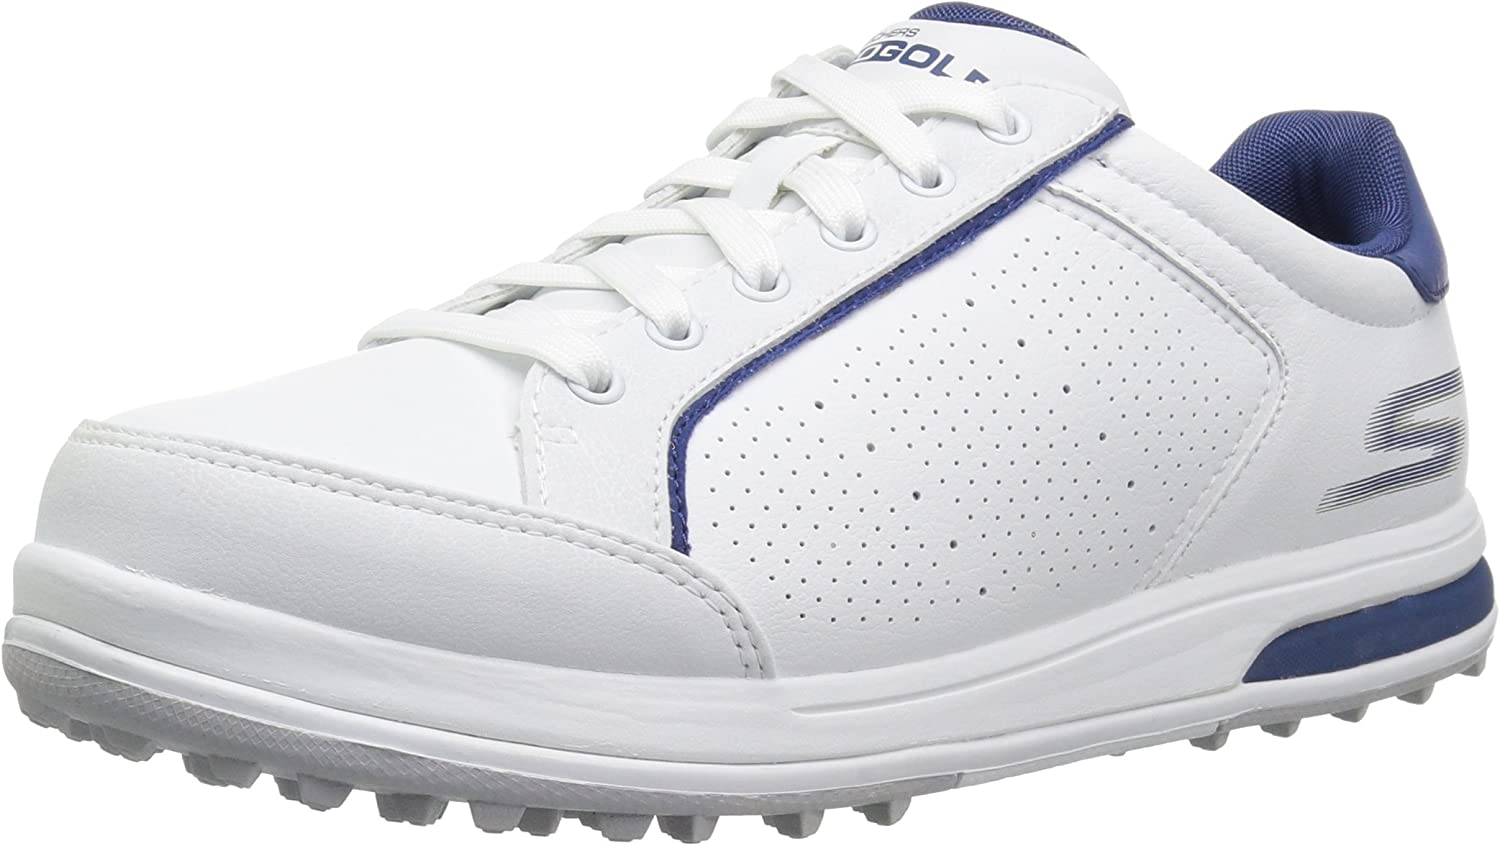 Go Drive 2 Relaxed Fit Golf-Shoes